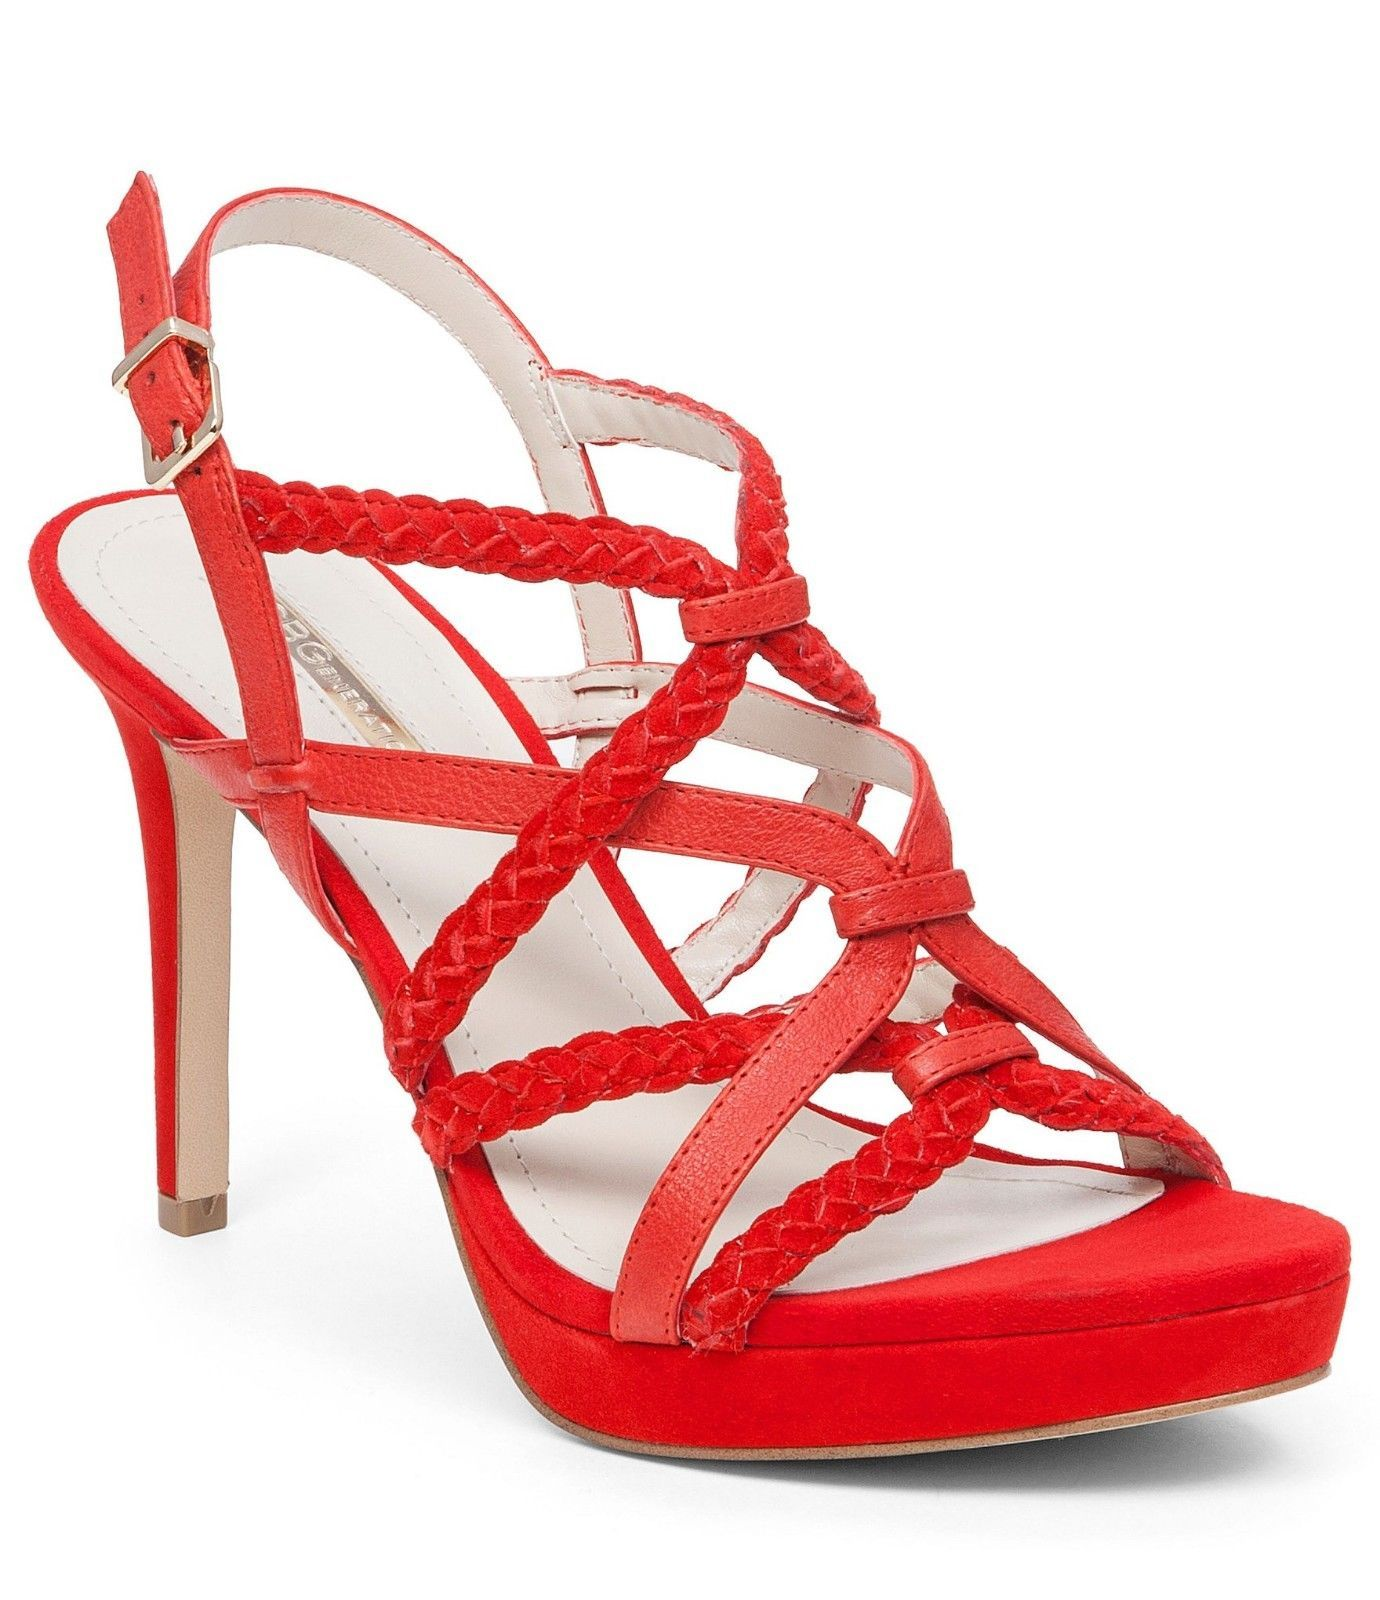 Primary image for Women BCBGeneration Emmi High Heel Strappy Sandals, BG-EMMI Candy Red Sizes 6-9